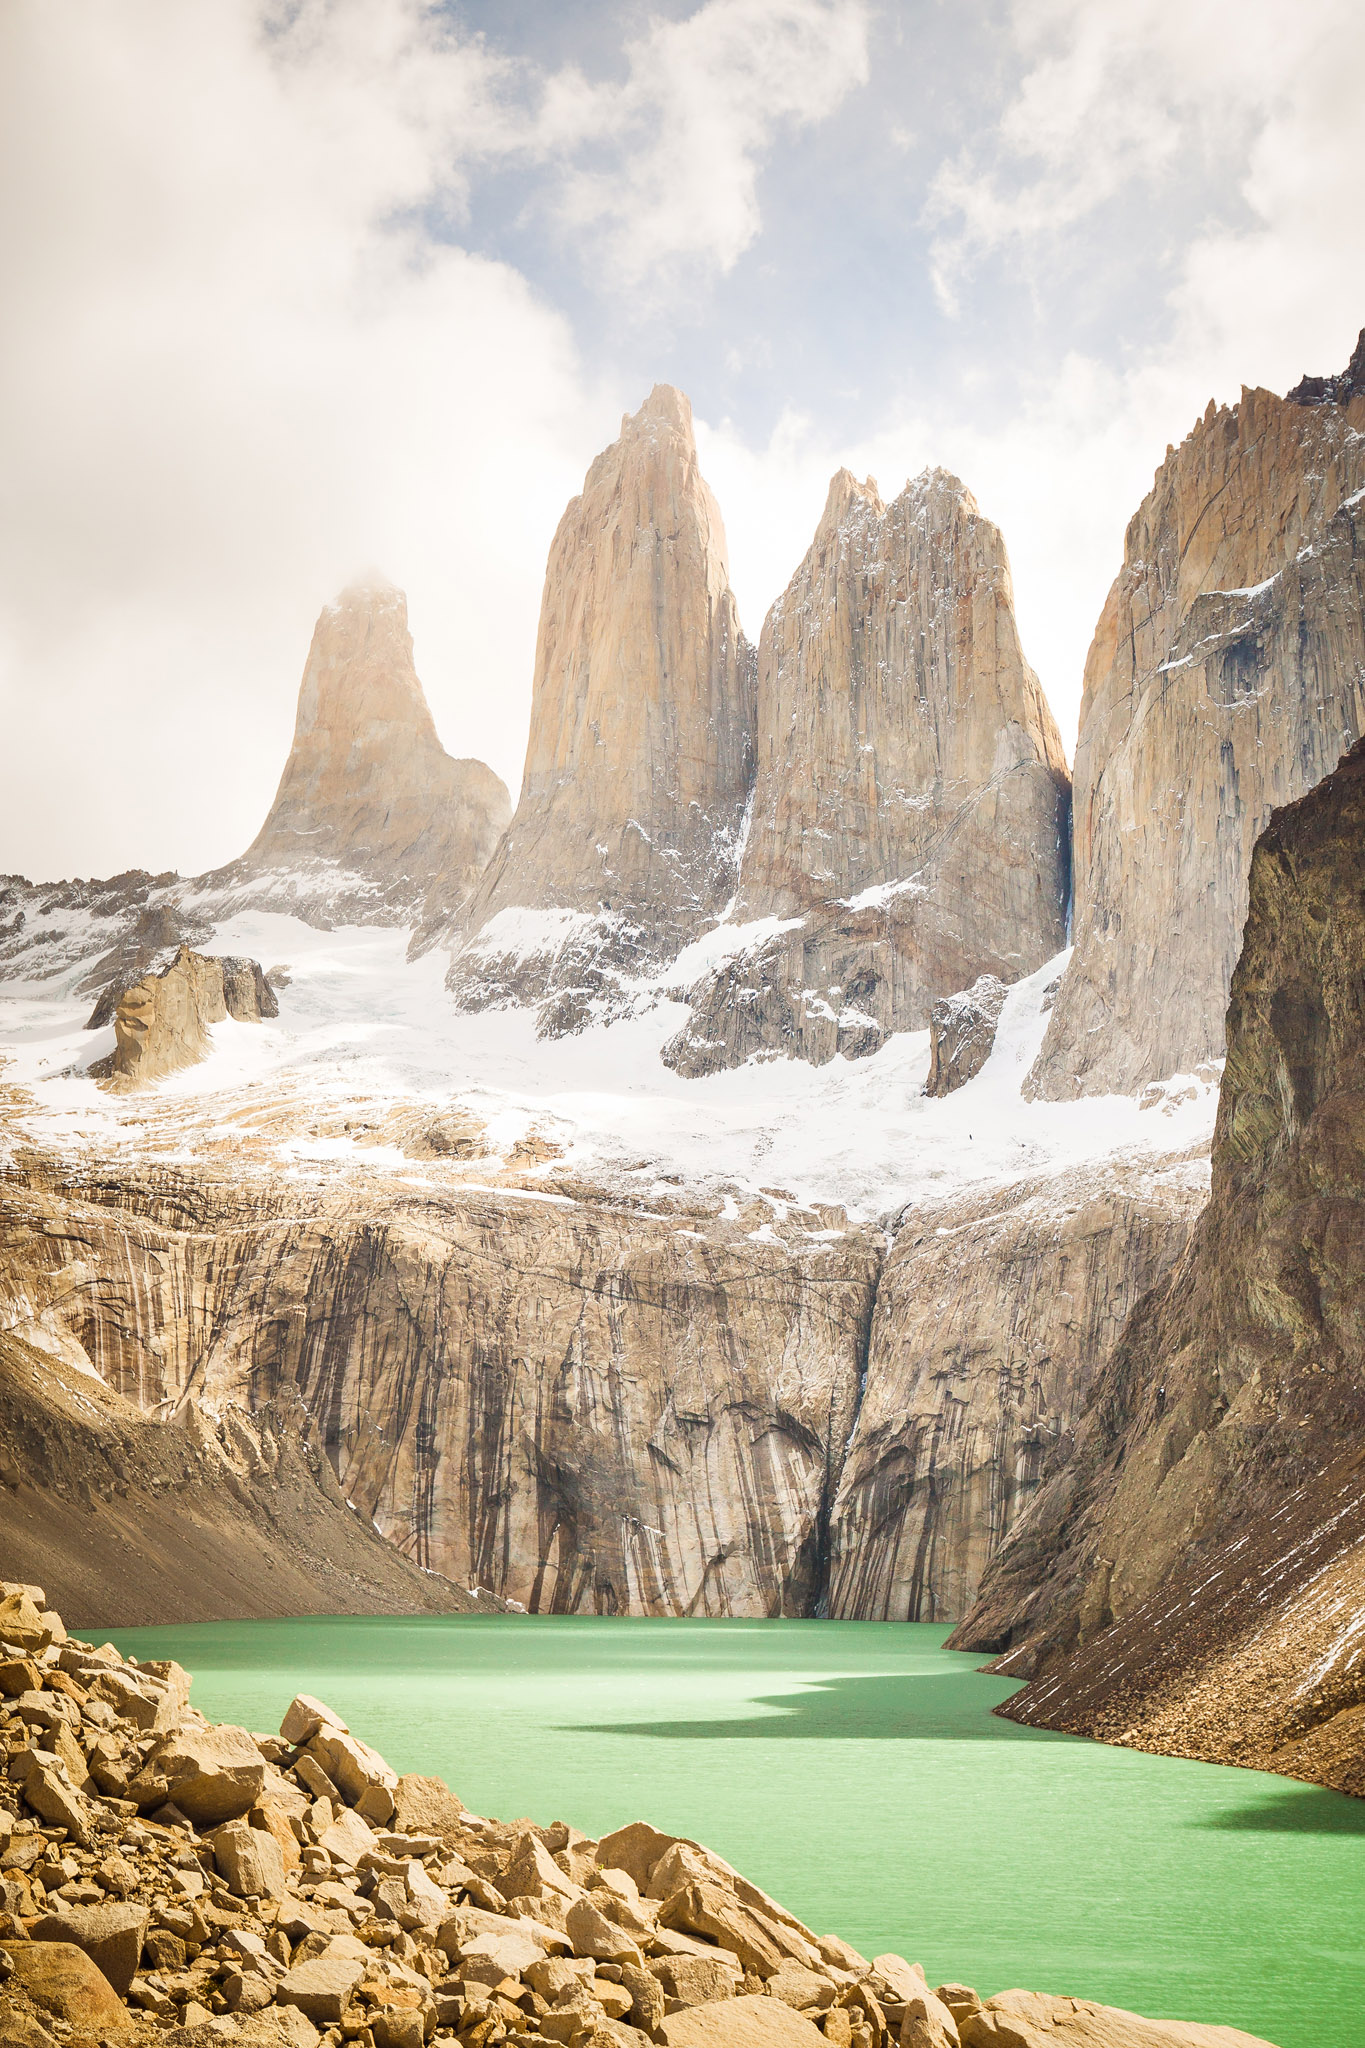 Wedding-Travellers-Overlanding-Destination-Wedding-Chile-Torres-del-Paine-Tres-Torres-Three-Towers-lake-emerald